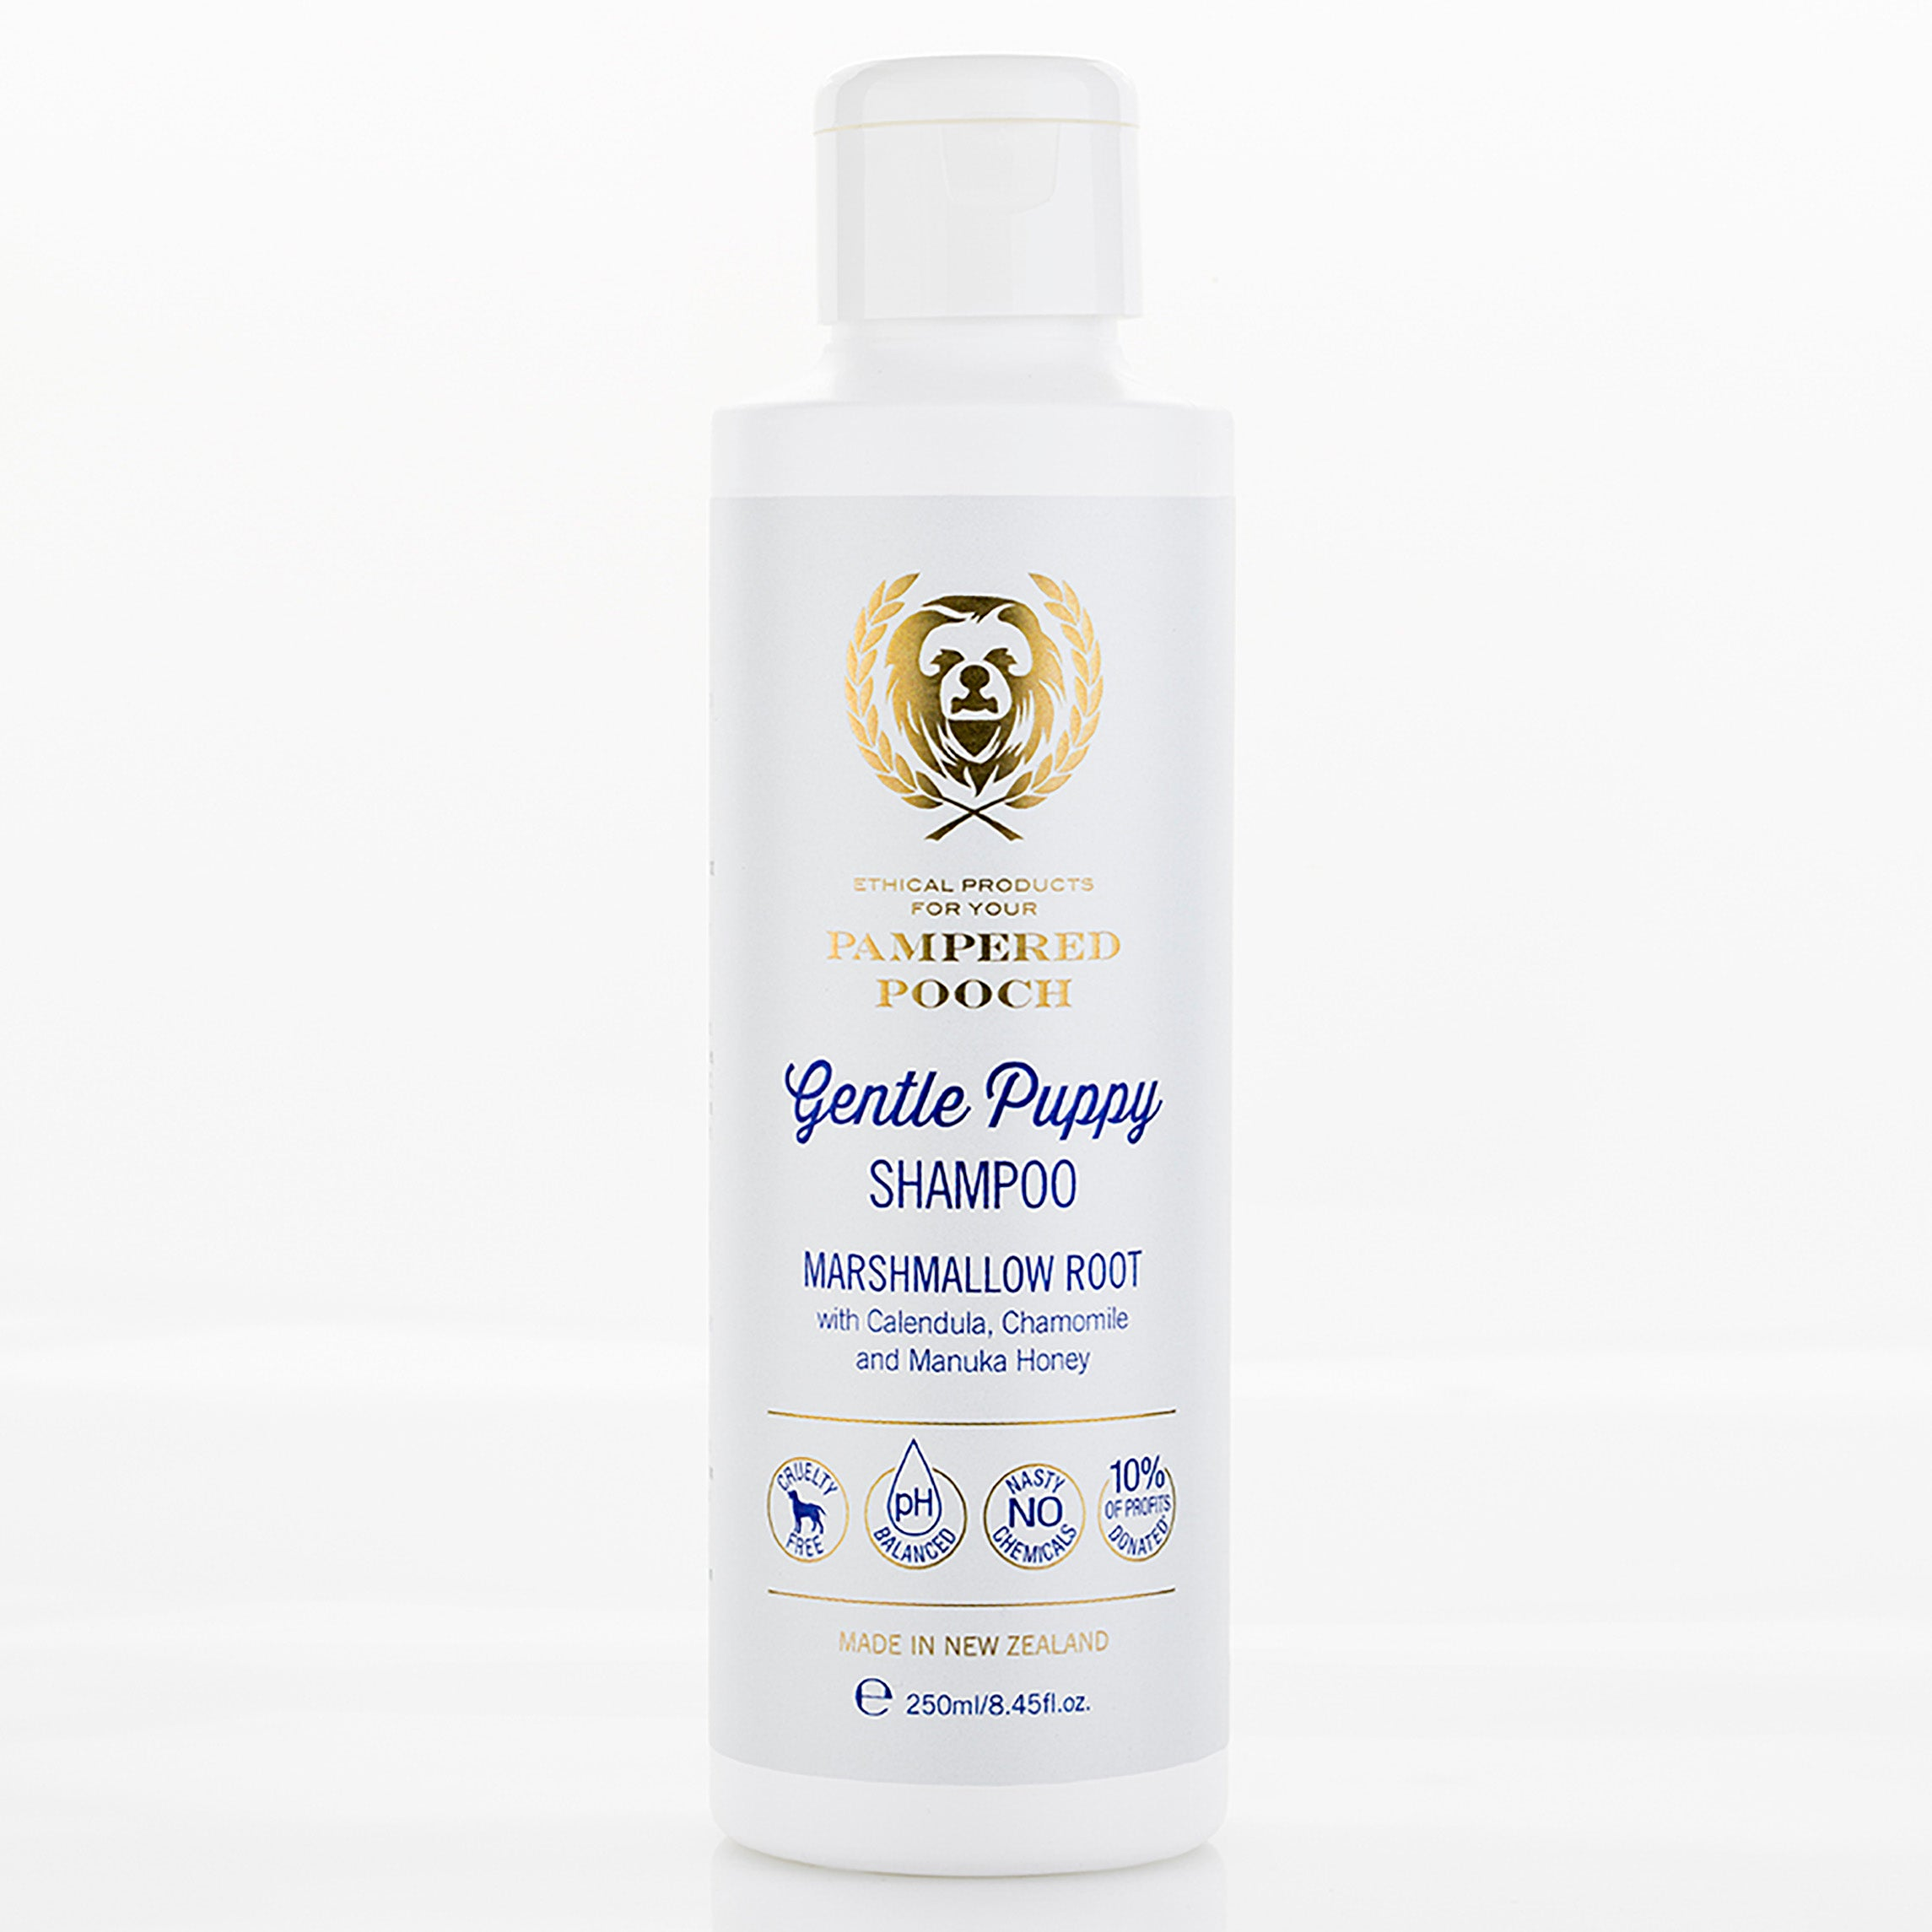 Our luxe Gentle Puppy Shampoo for dogs is designed for delicate skin. It will keep Puppy's fur soft and smelling amazing.